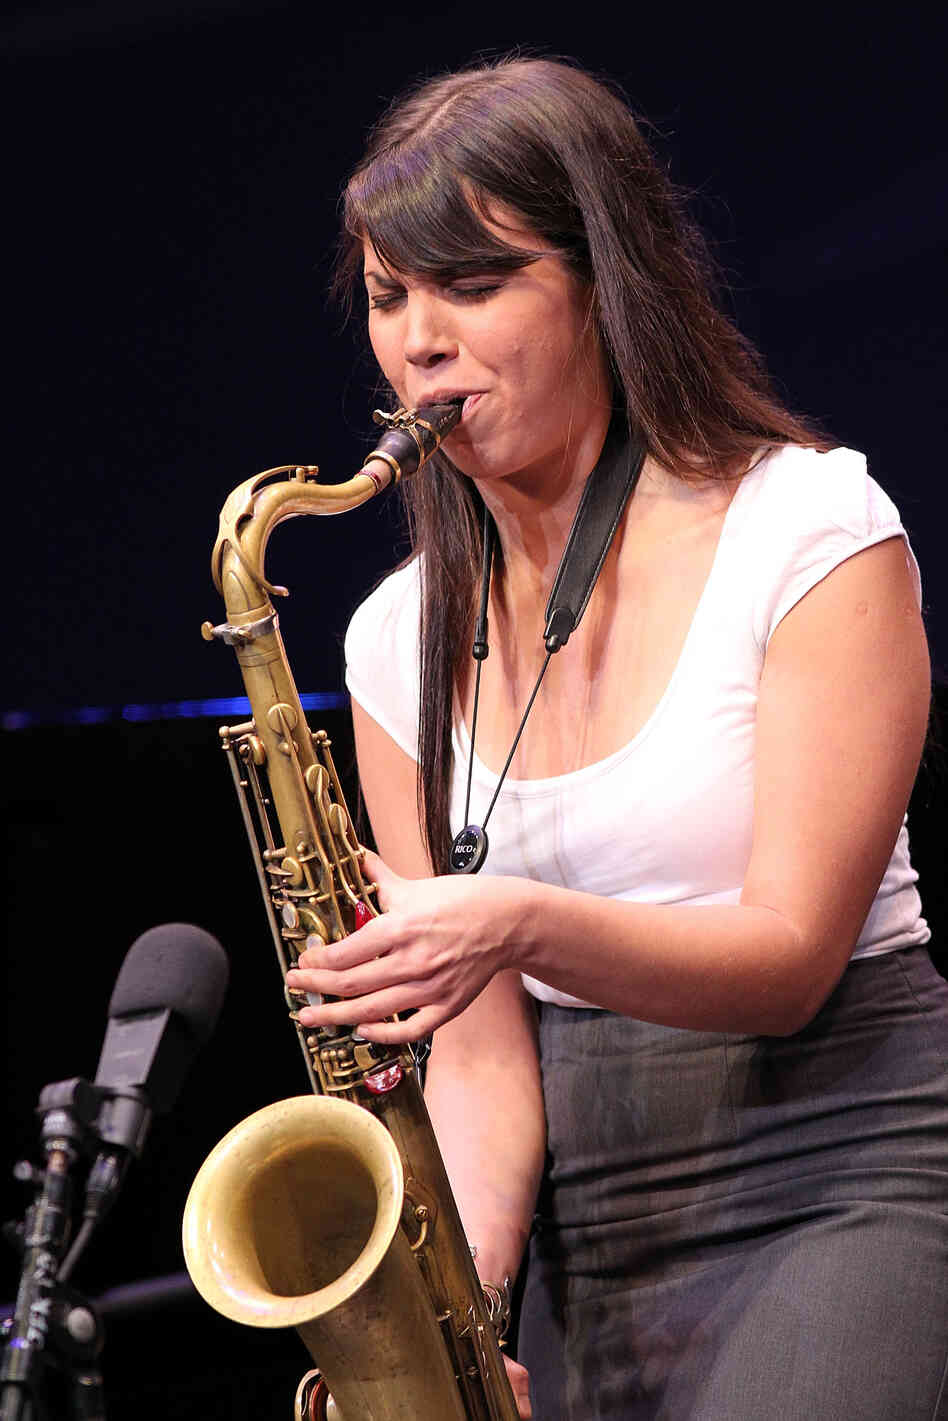 Melissa Aldana performs at the 2013 Thelonious Monk International Jazz Saxophone Competition at The John F. Kennedy Center for Performing Arts in Washington, D.C.